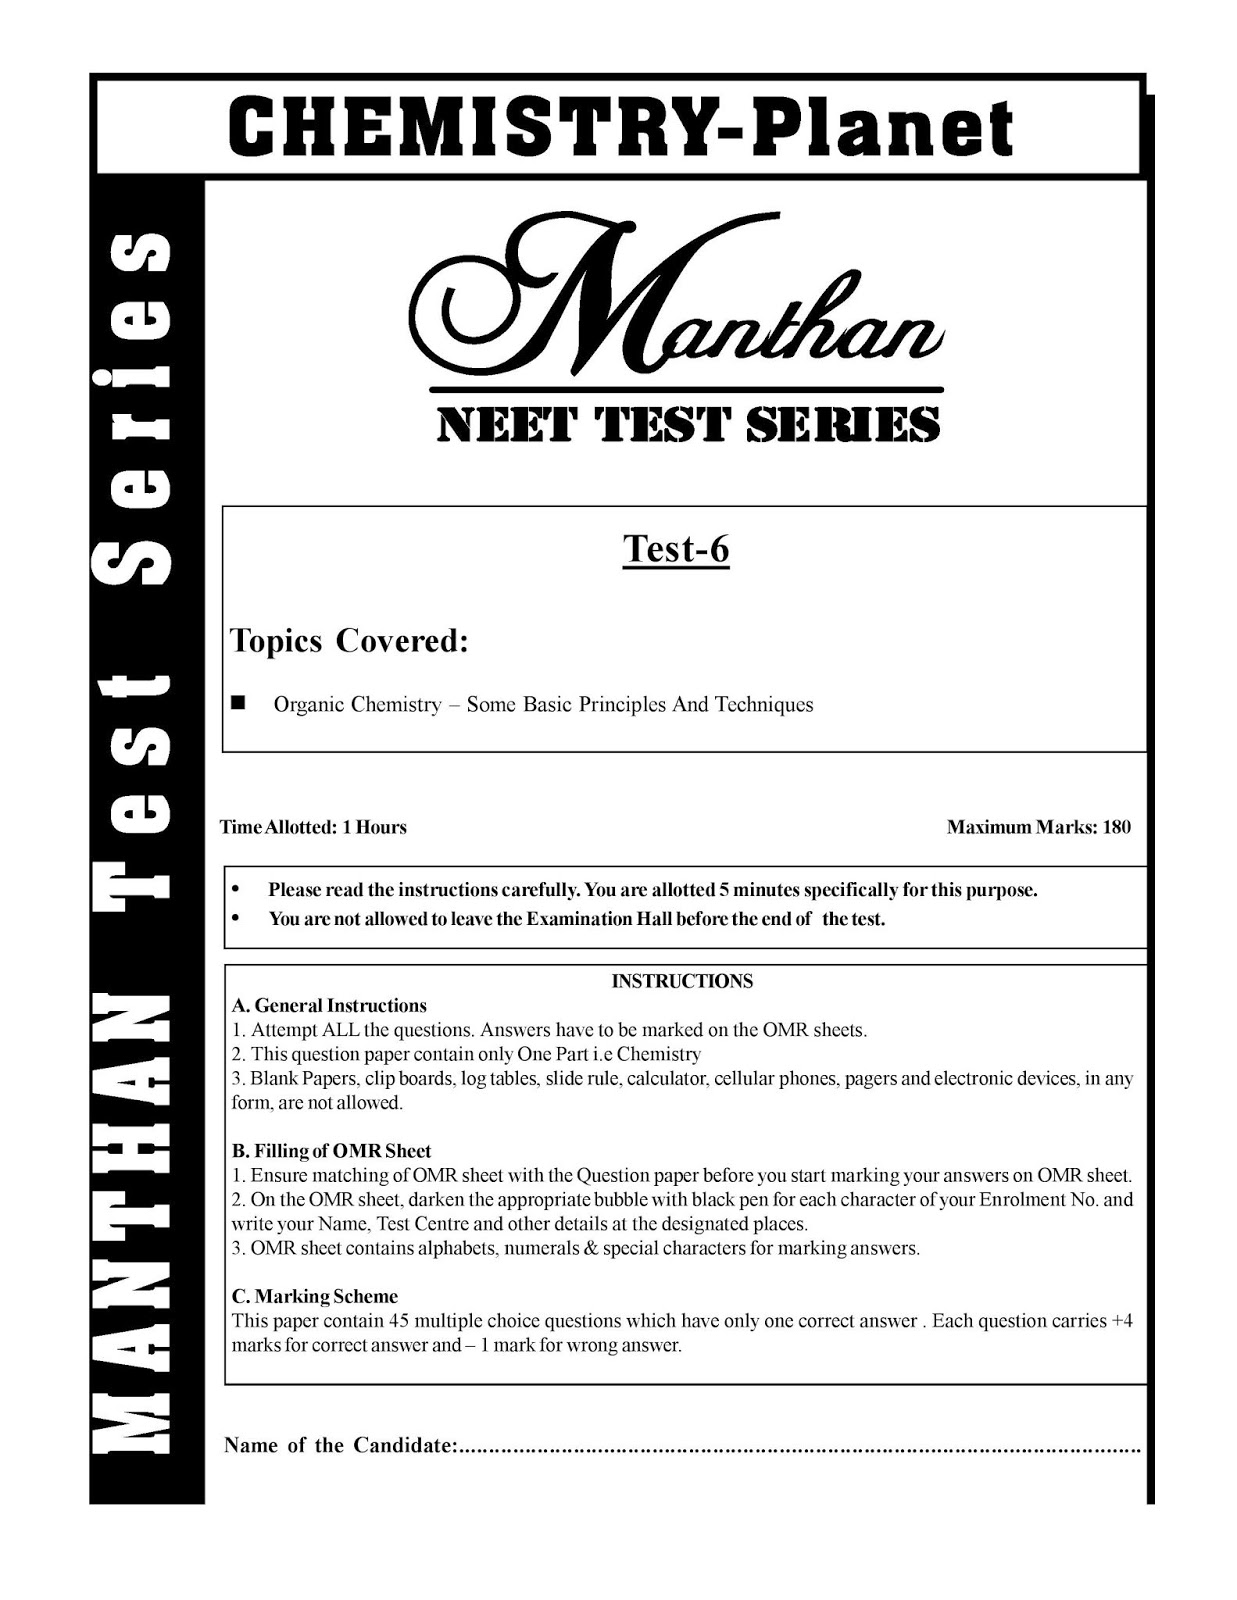 Free Online Chemistry Study Material For NEET/JEE-Mains/JEE-Adanced